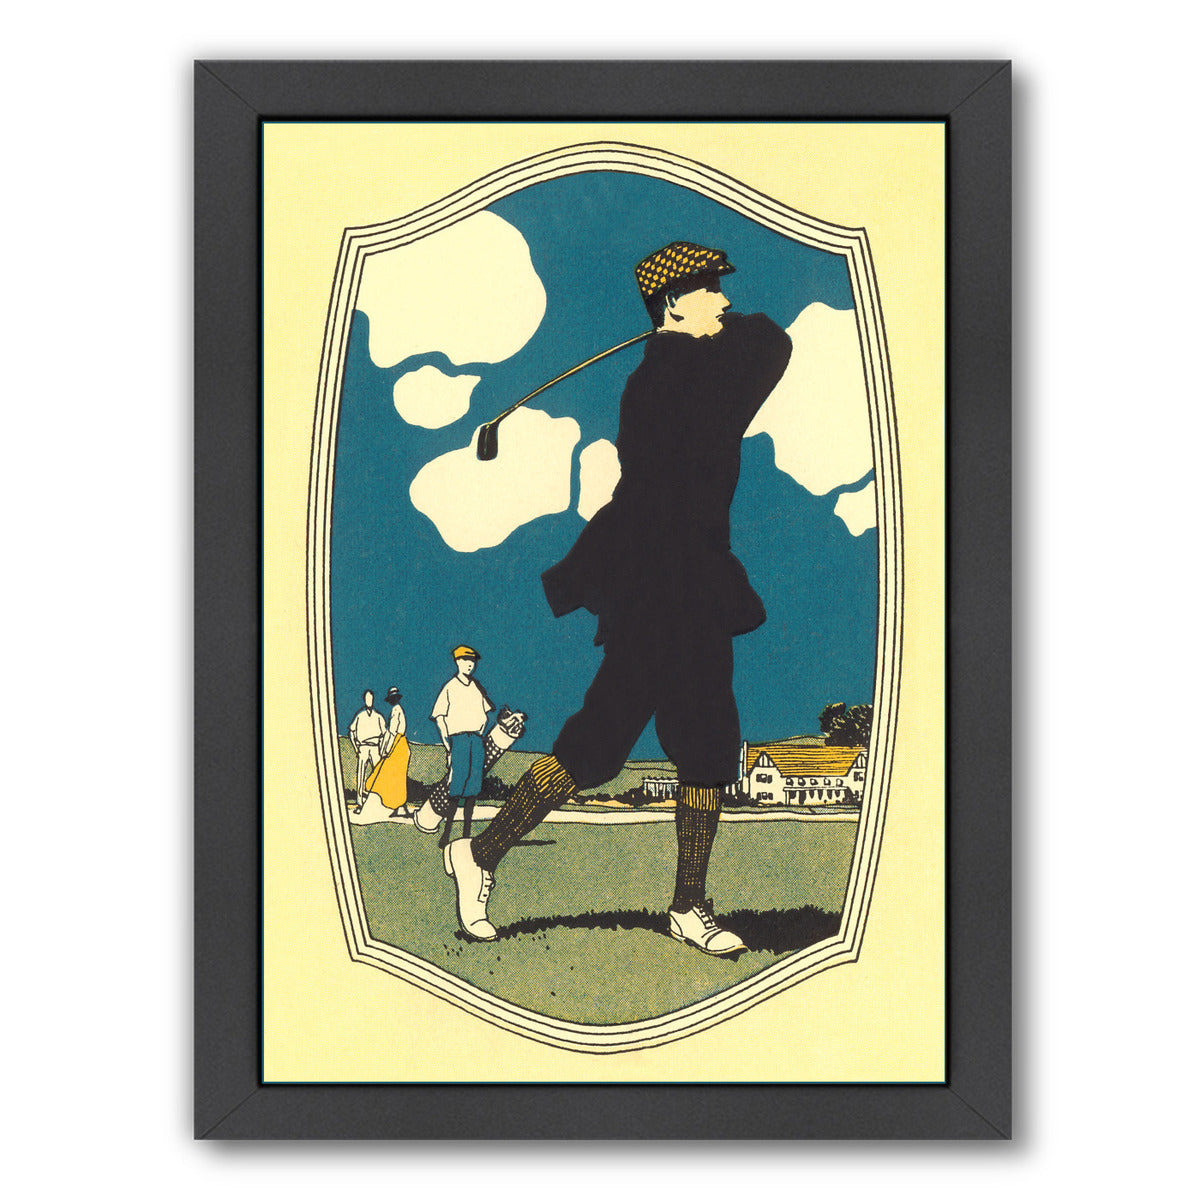 Vintage Golfers by Found Image Press Framed Print - Americanflat